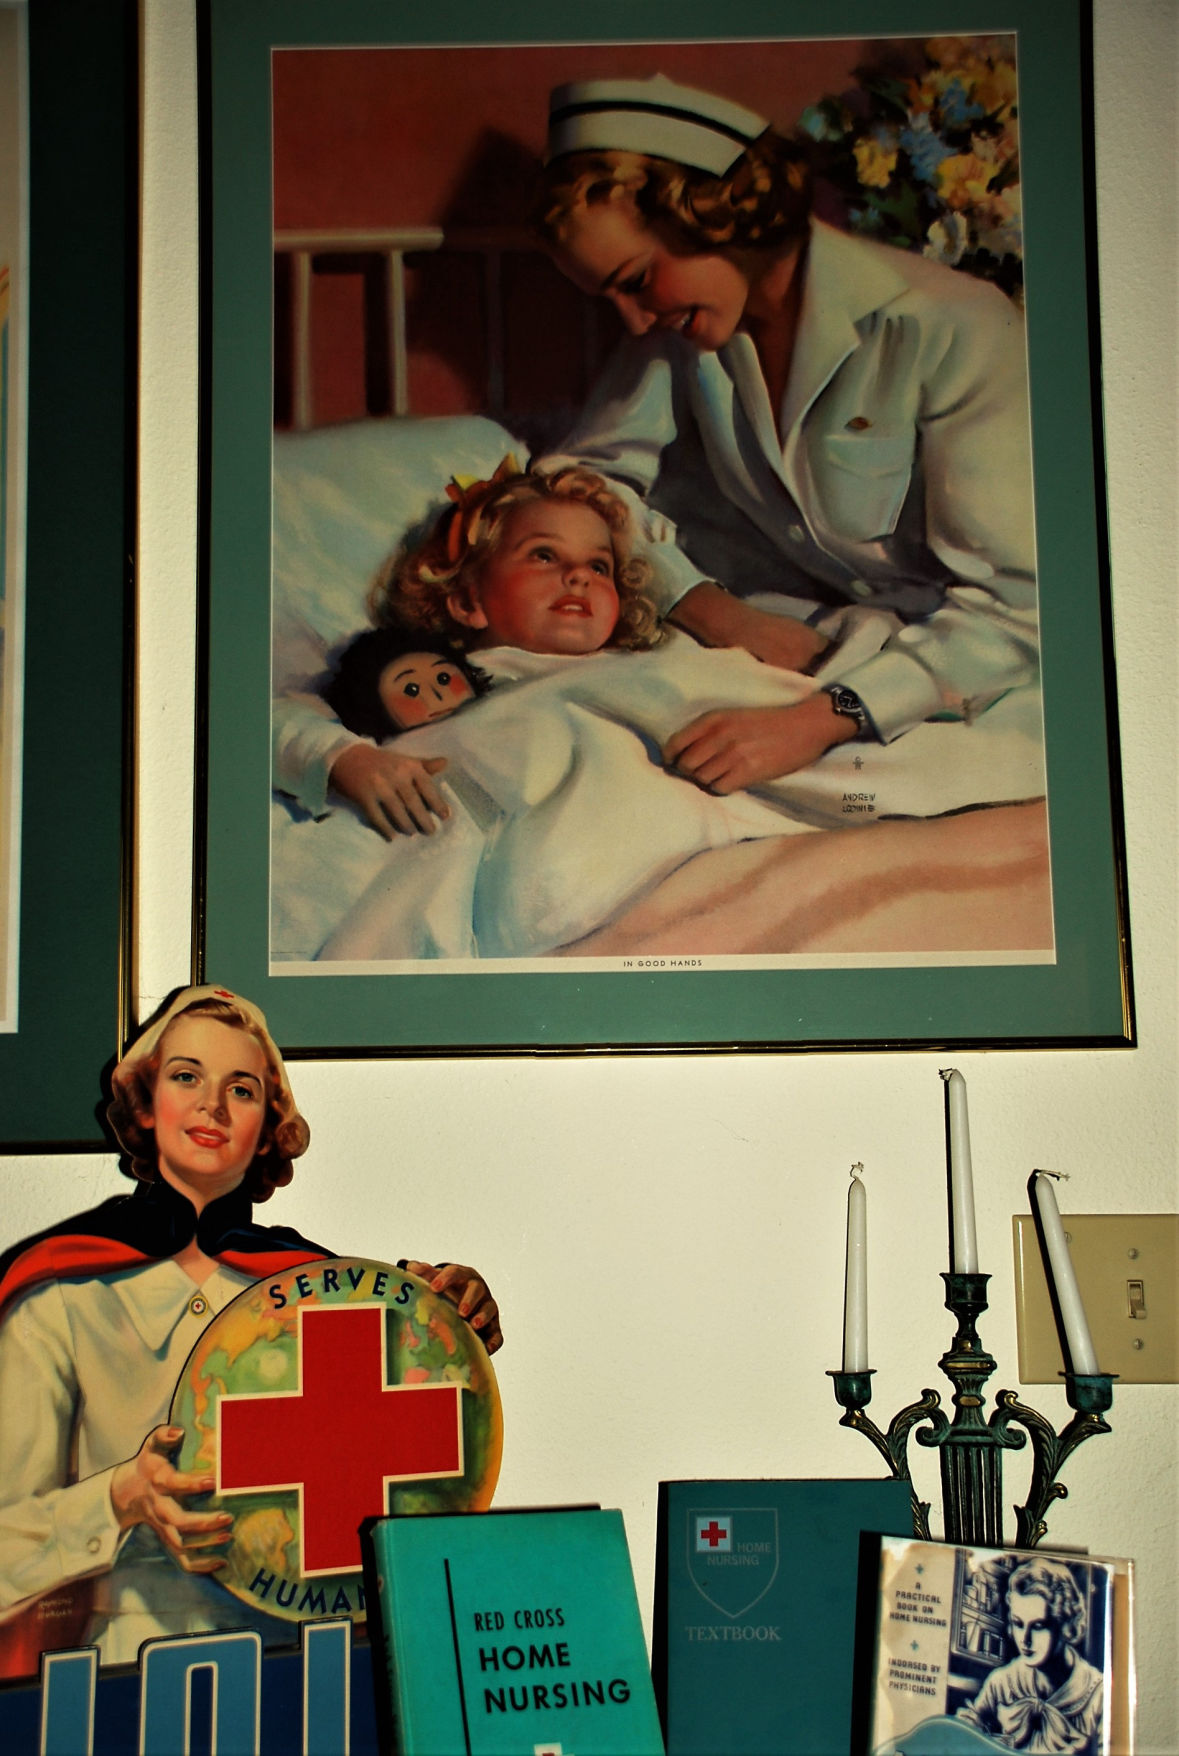 Local museum celebrates the 'lost art' of nursing